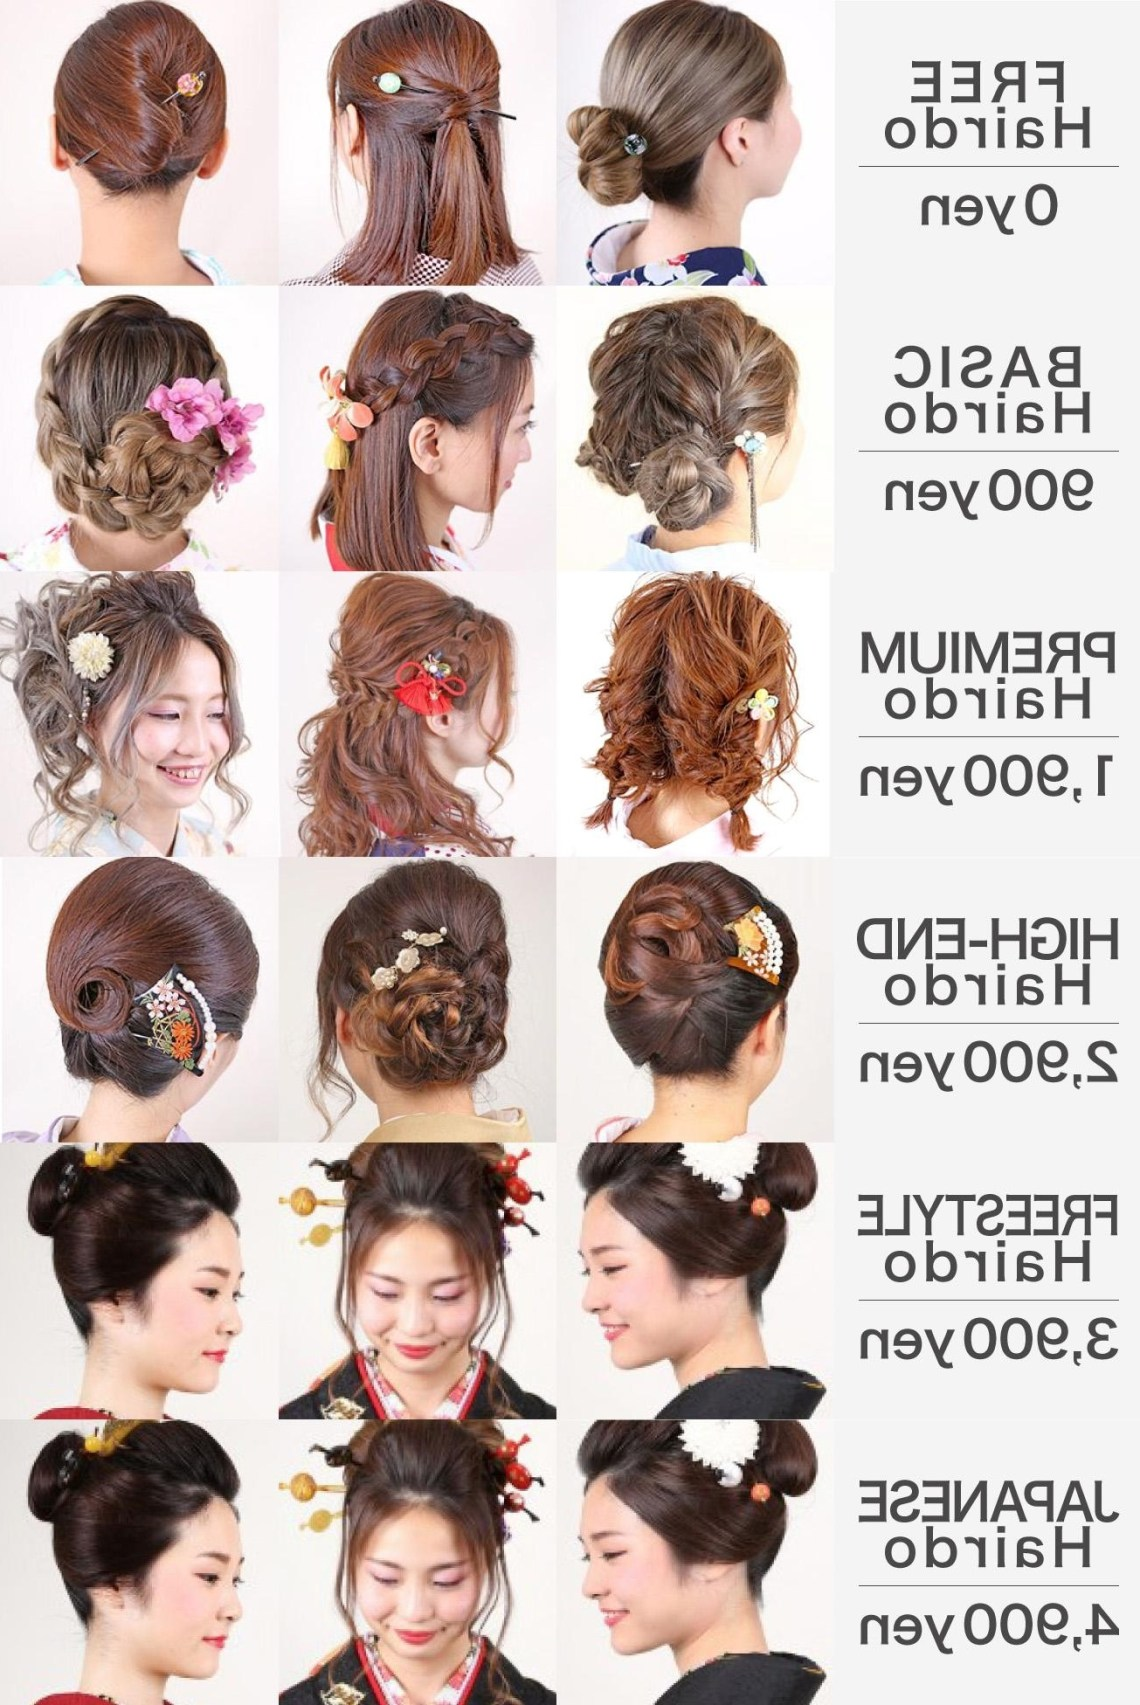 Wargo Kimono Rental Hairdo Styles My Suitcase Journeys 10+ Stylish Kimono Hairstyles For Medium Hair